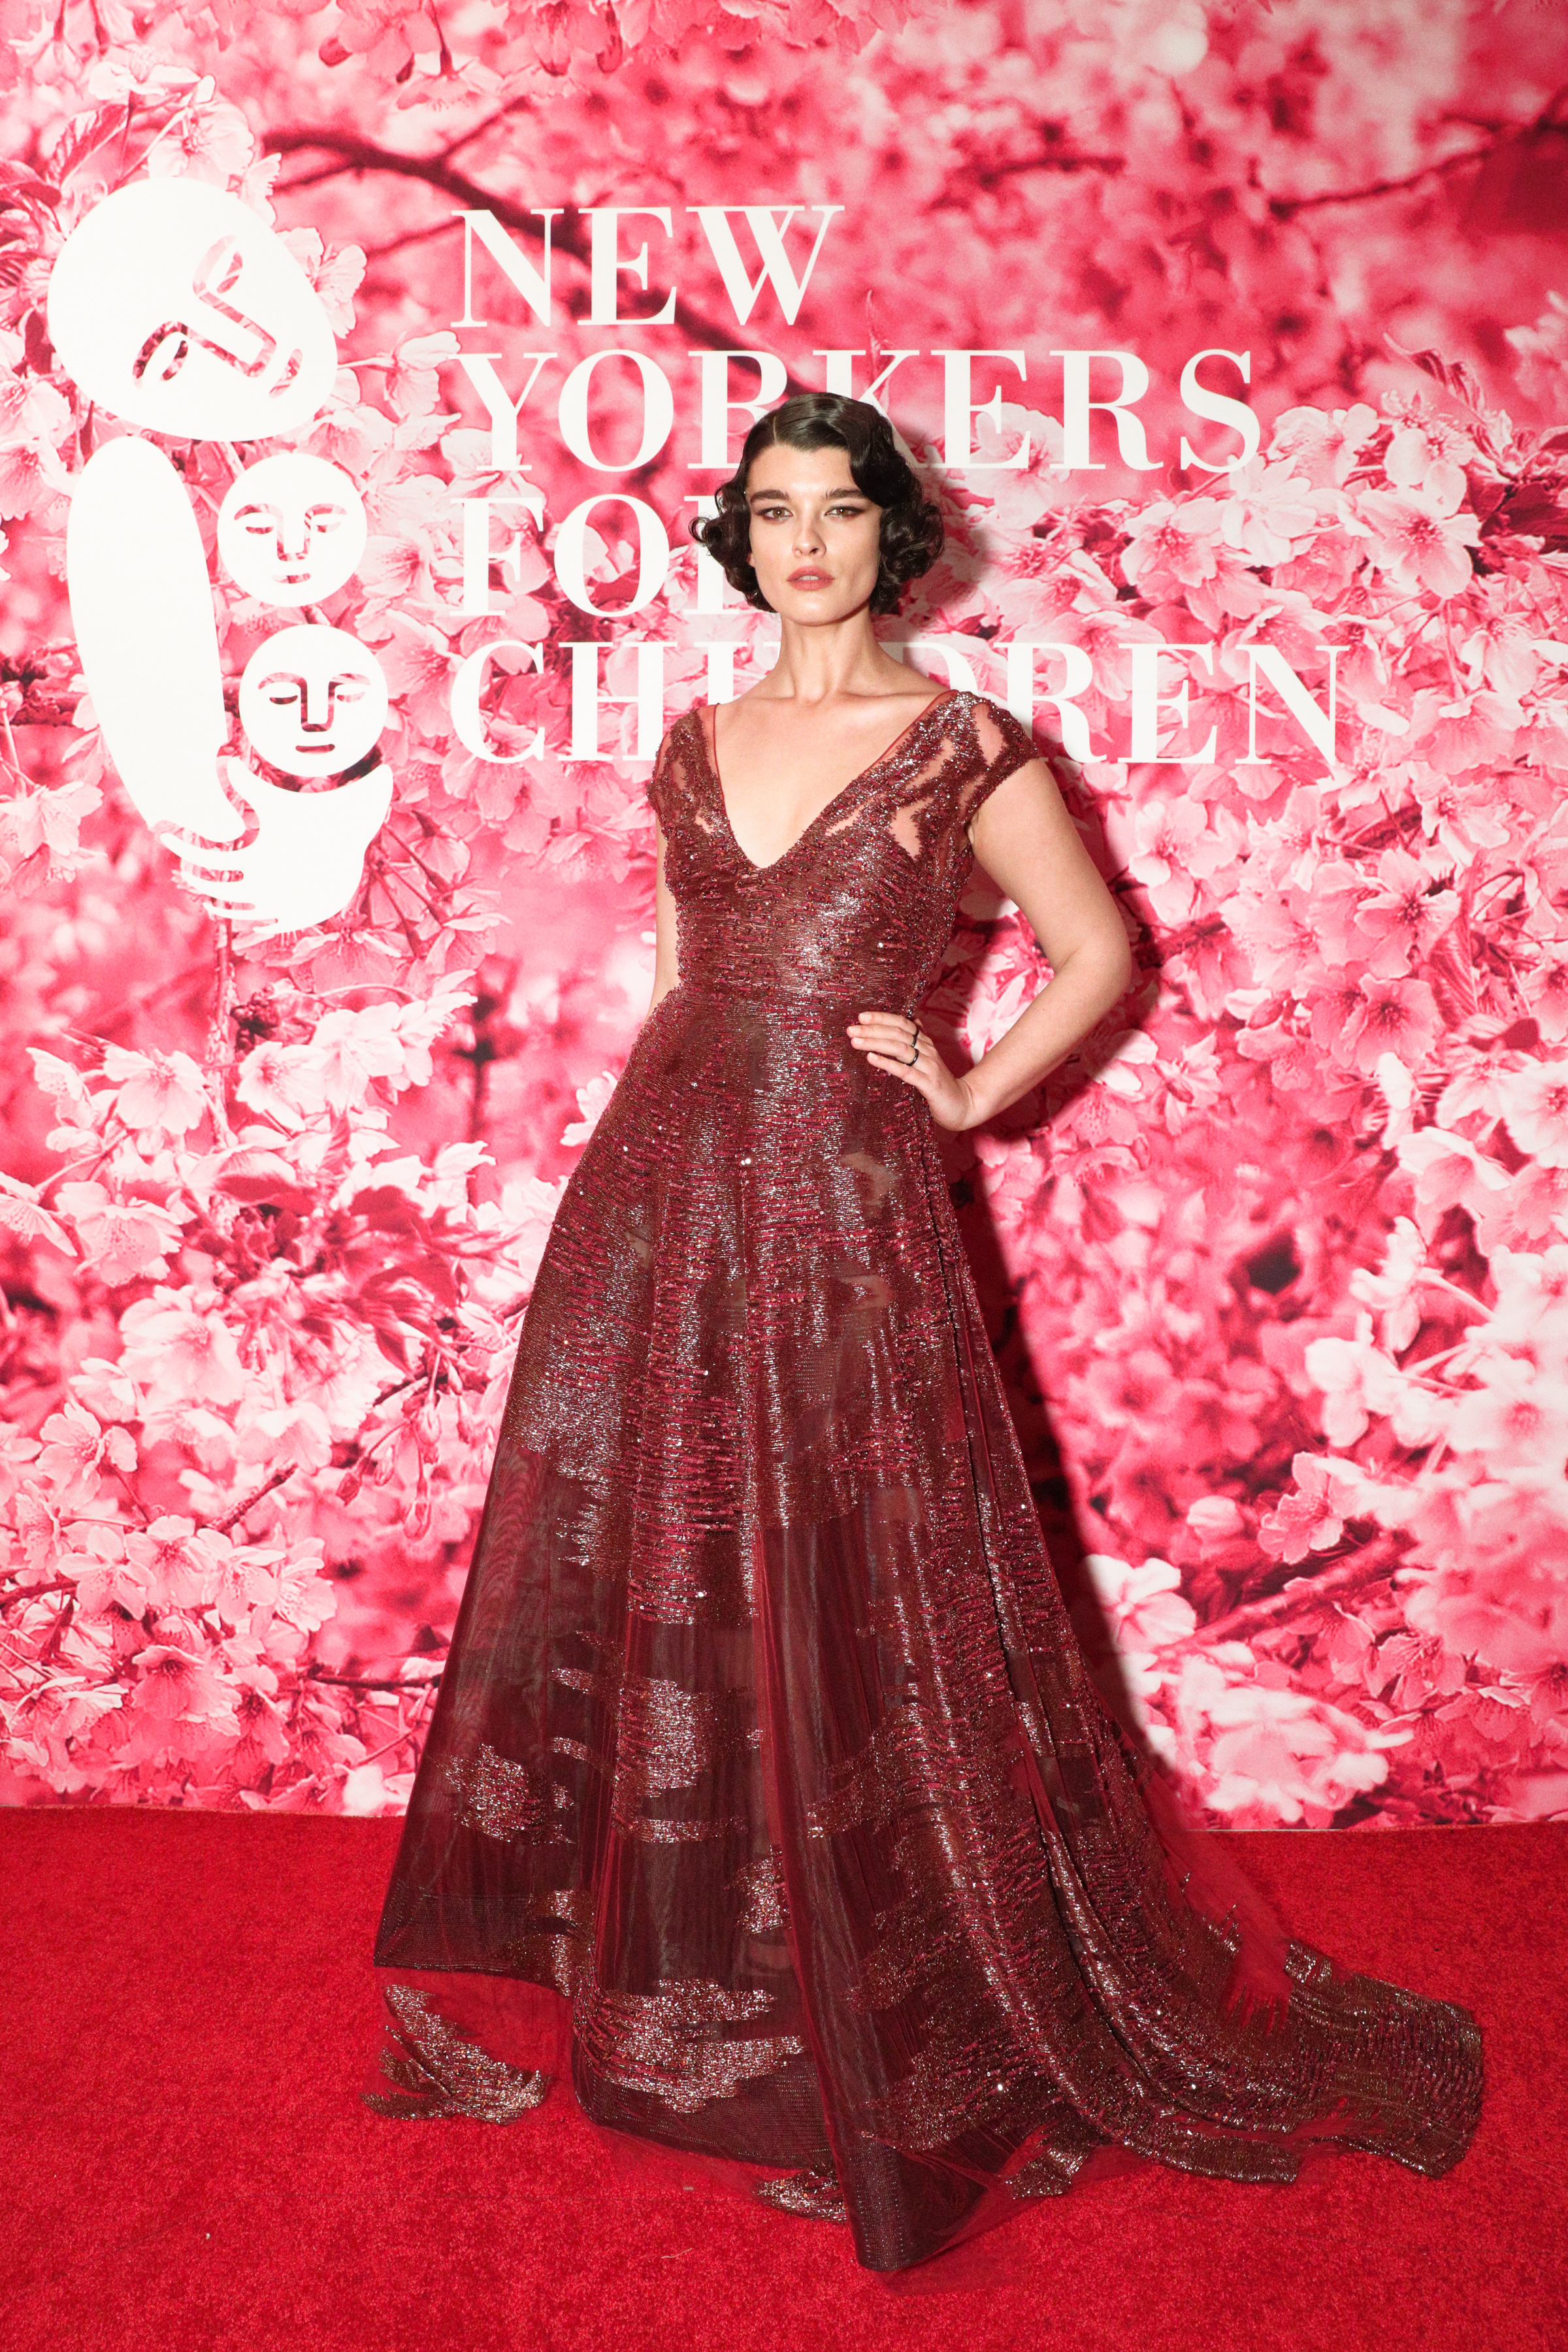 Model Crystal Renn attends The New Yorkers For Children's A Fool's Fete: Enchanted Garden Gala